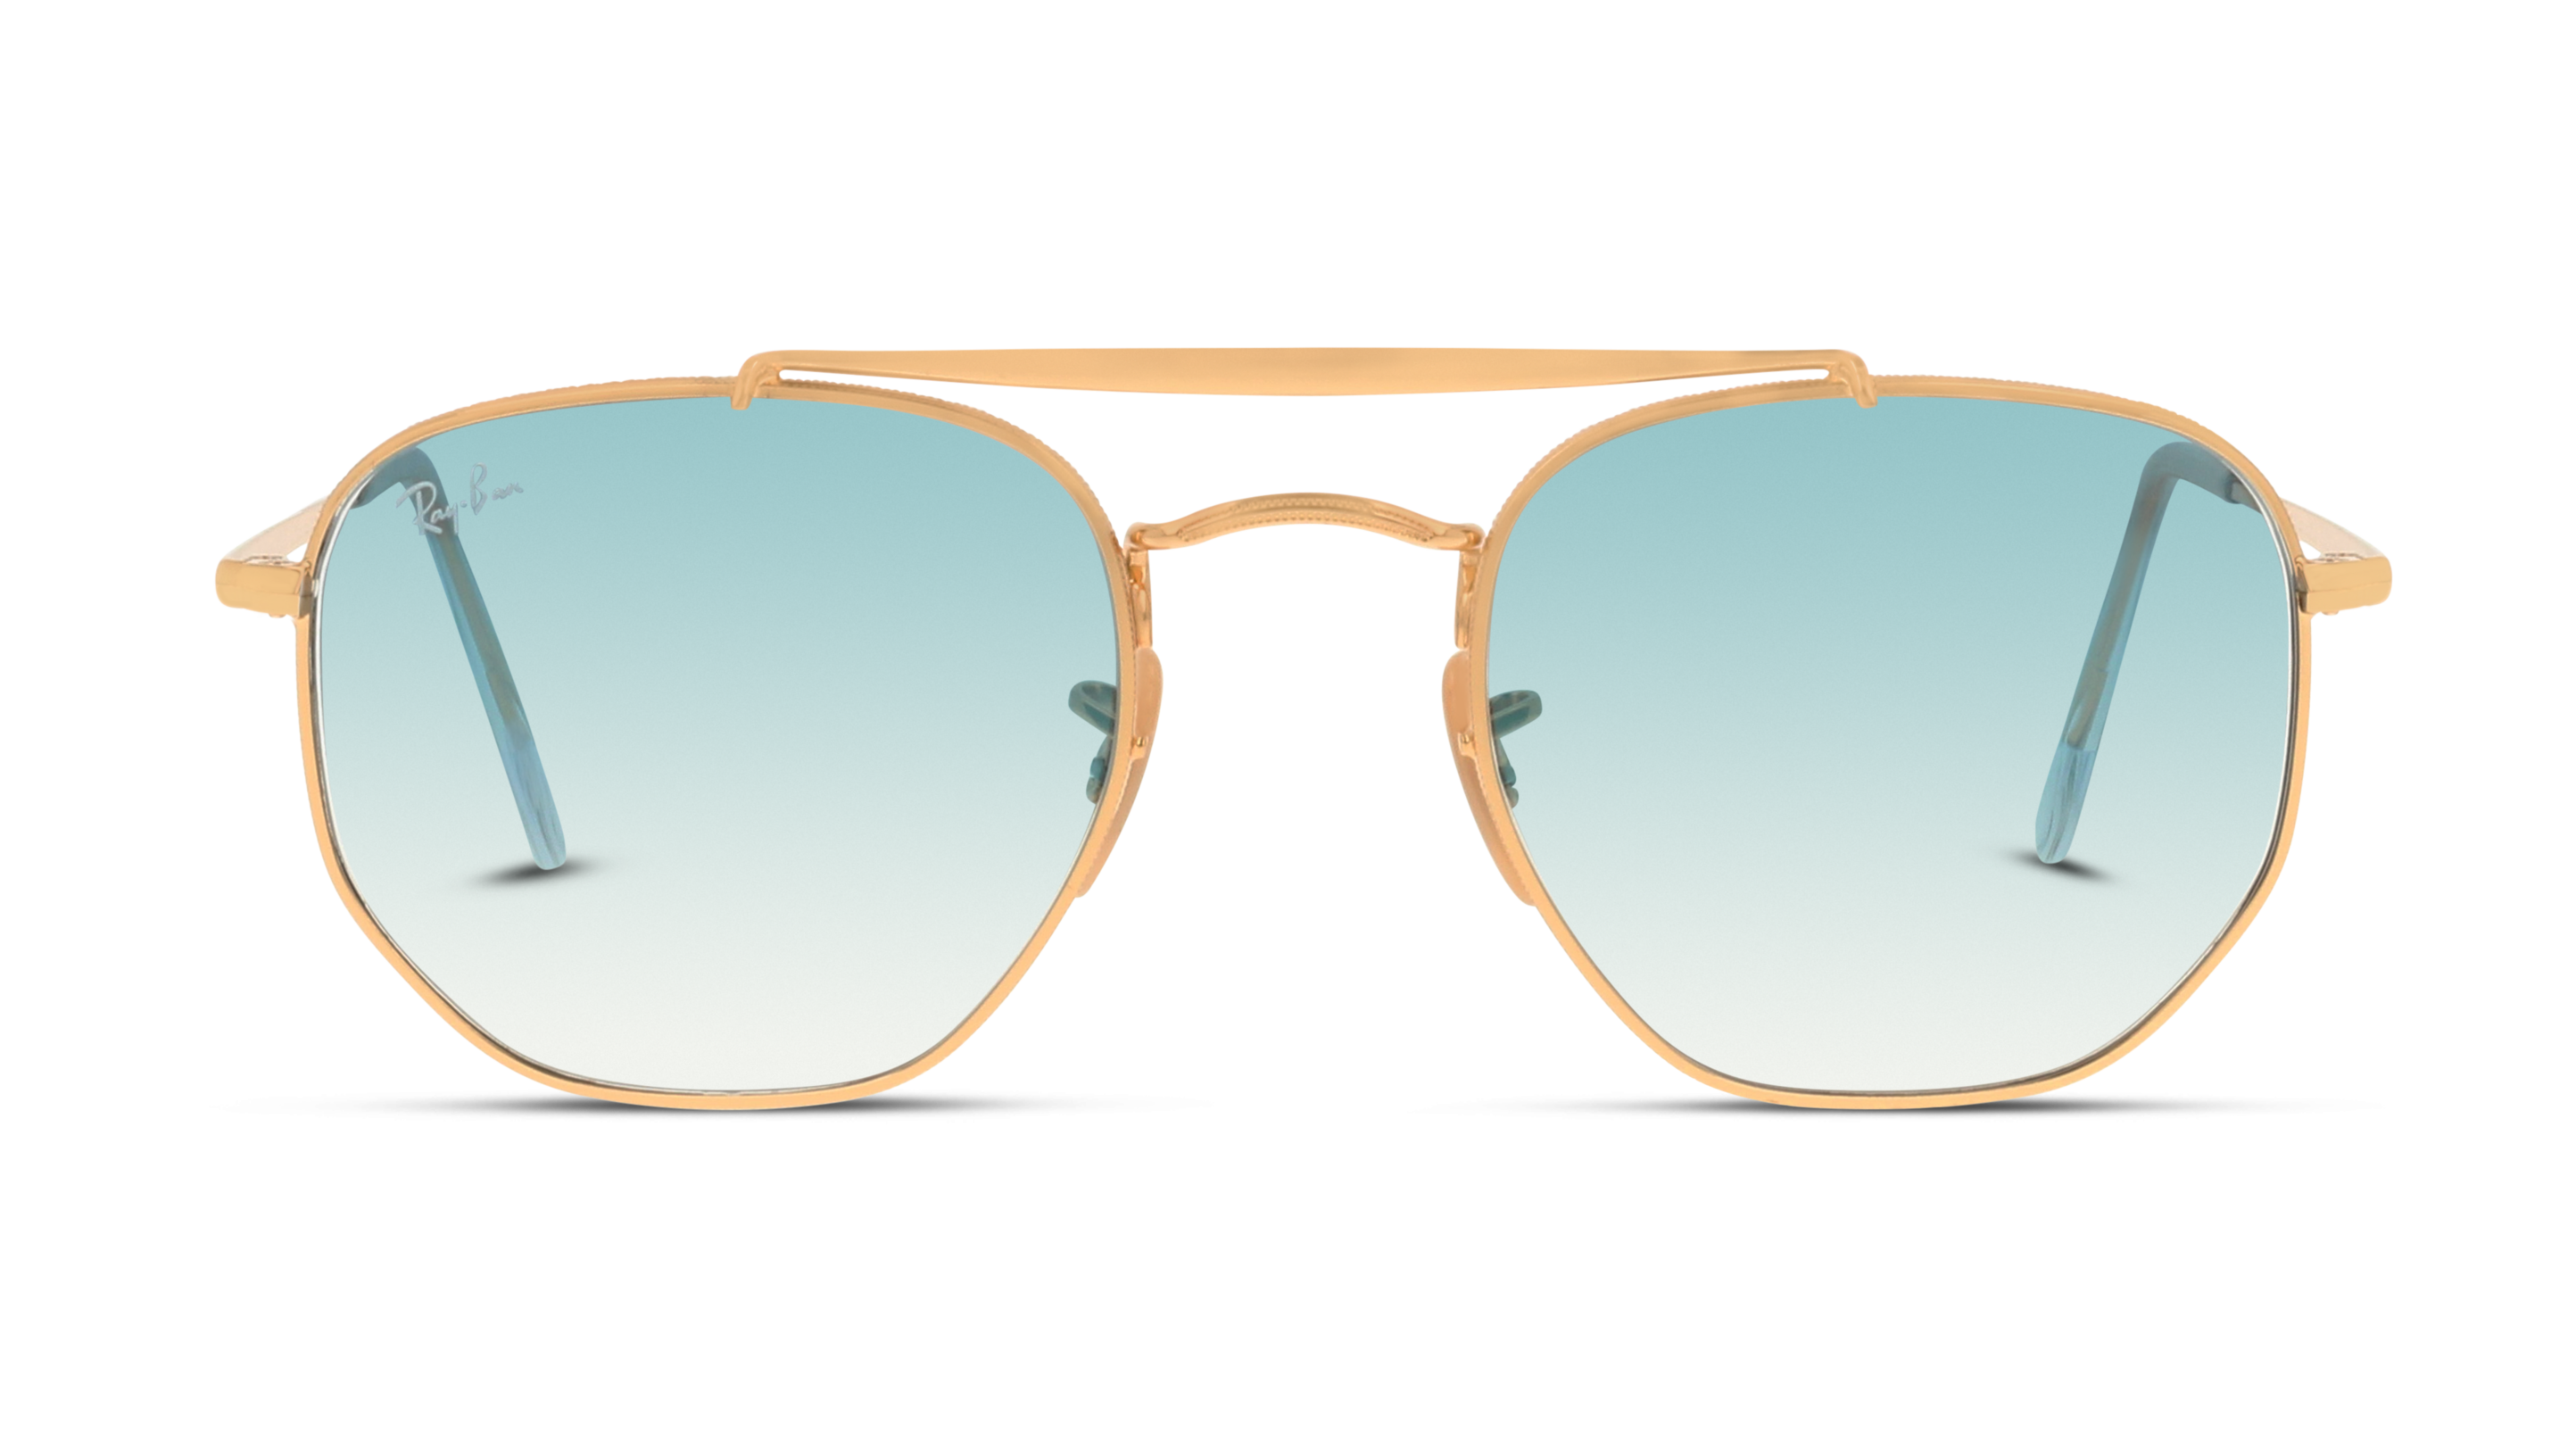 Front Ray-Ban Ray-Ban 0RB3648 001/3F 51/21 Goud/Blauw